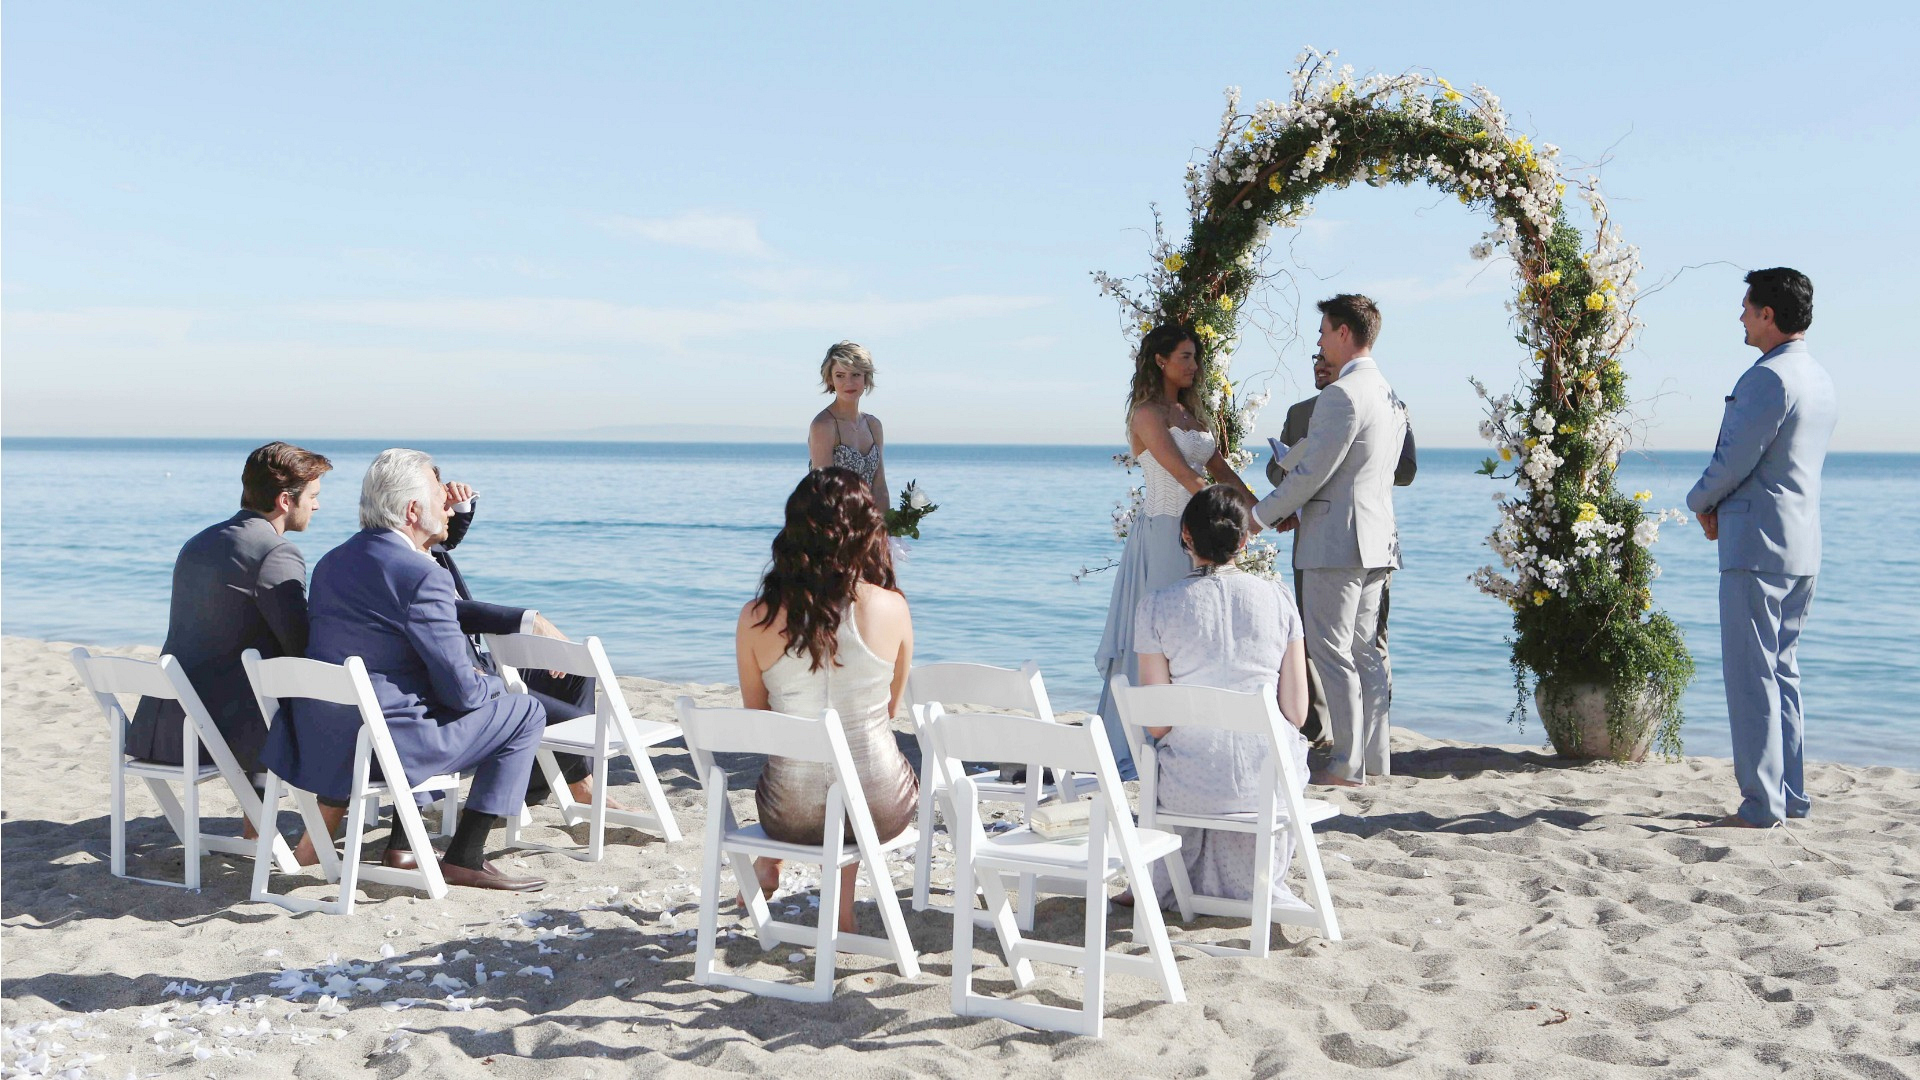 Everyone watches as the couple exchanges vows.